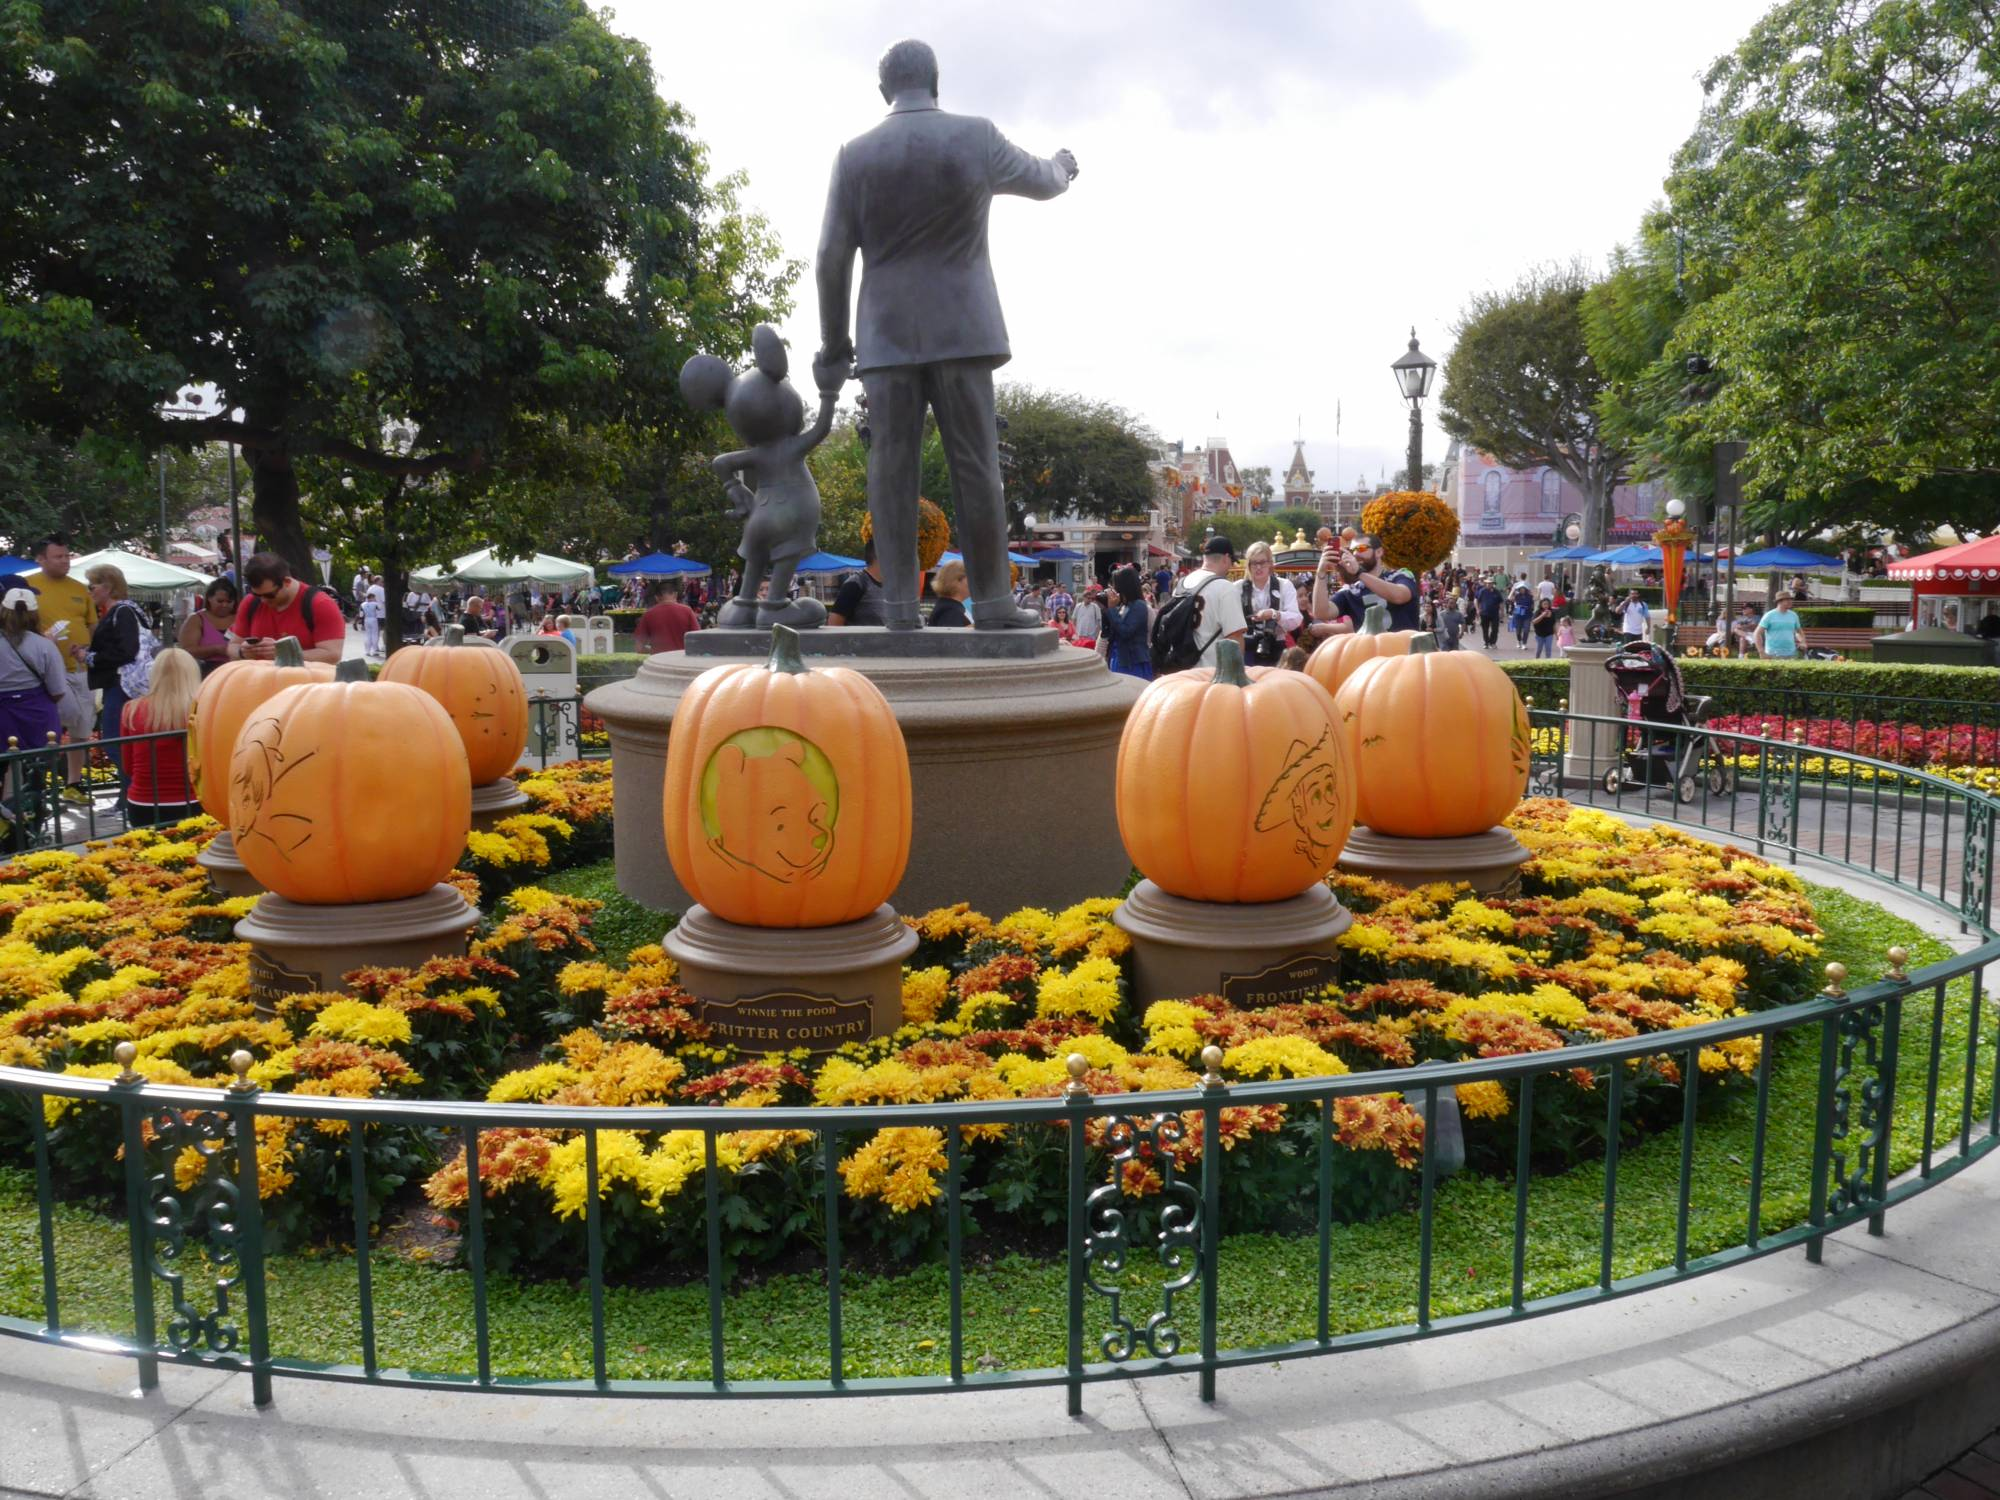 Enjoy Mickey's Halloween Party at Disneyland | PassPorter.com